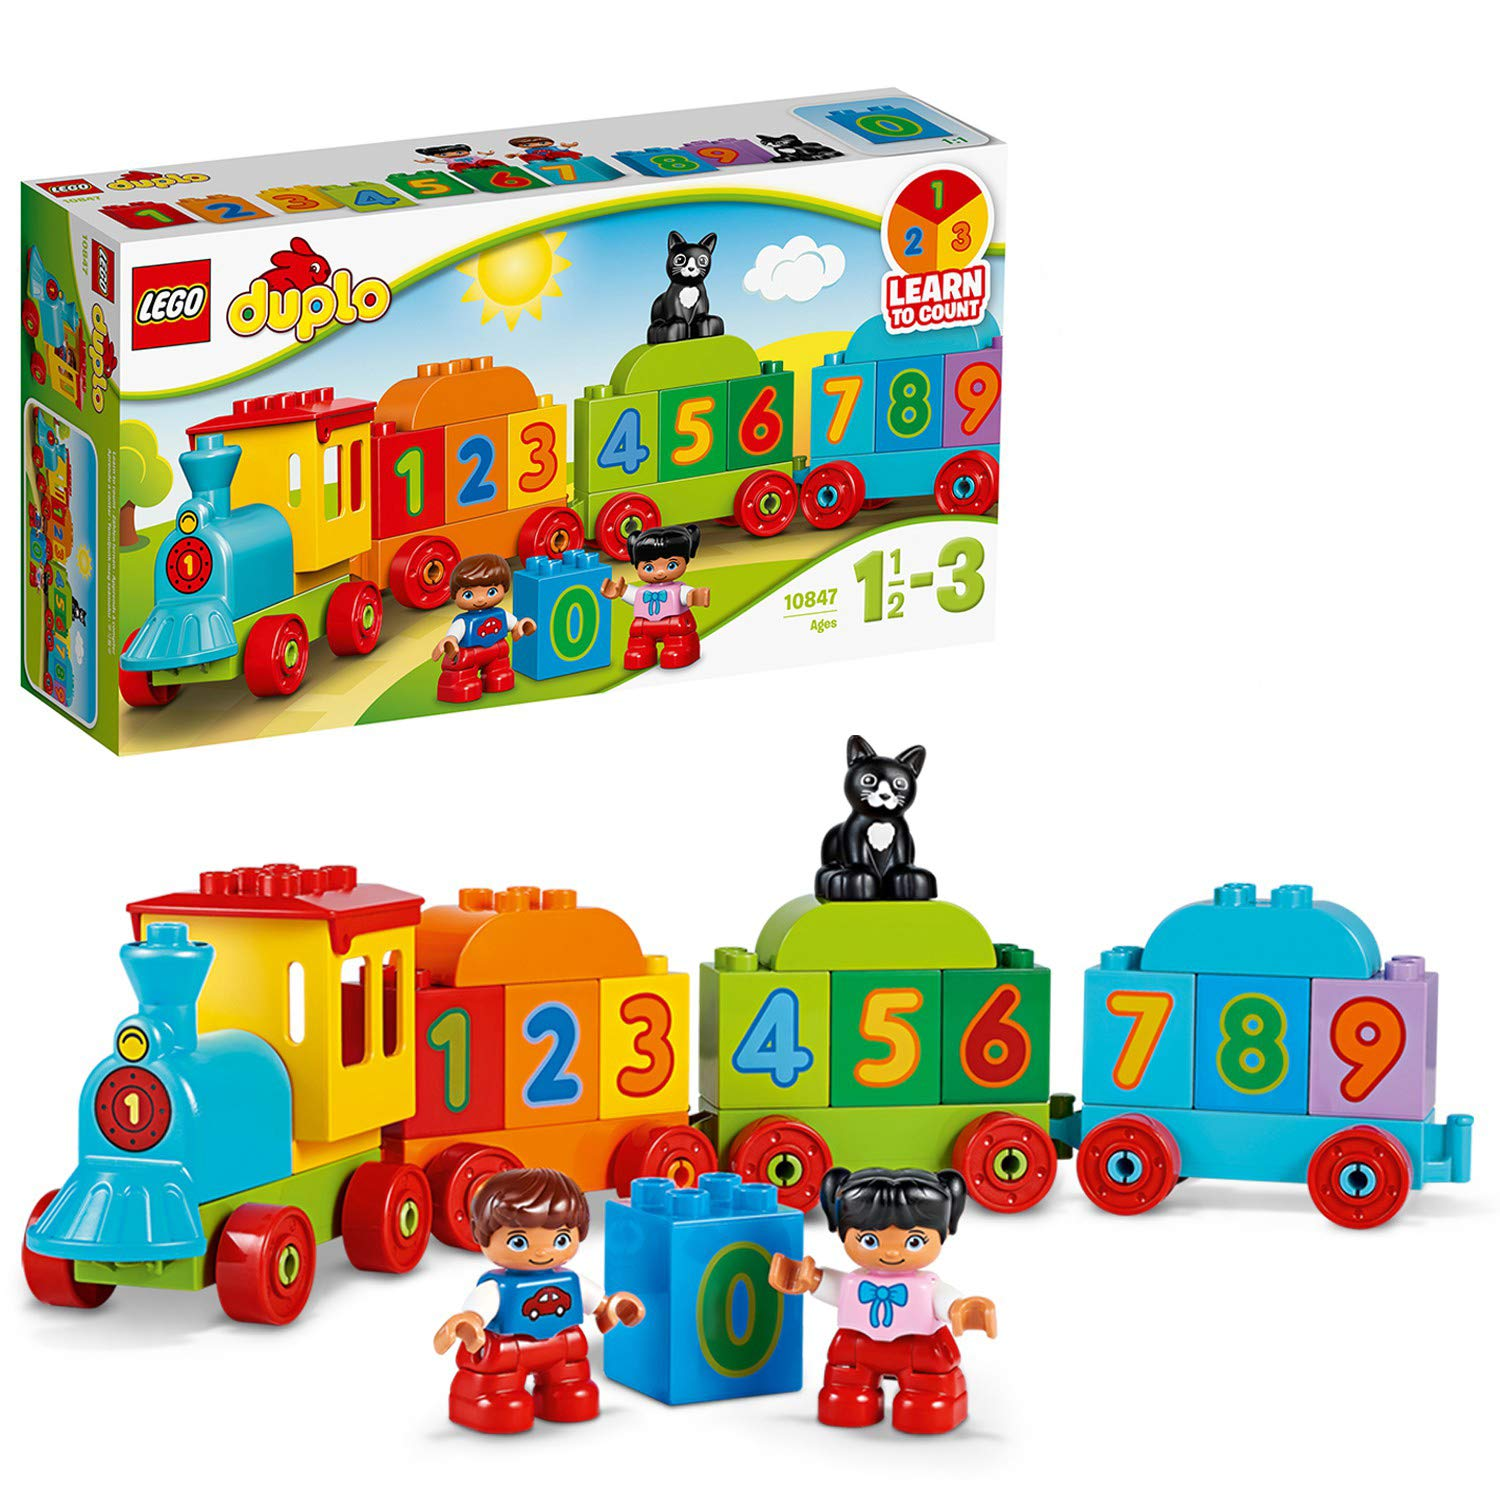 LEGO 10847 DUPLO My First Number Train Toy